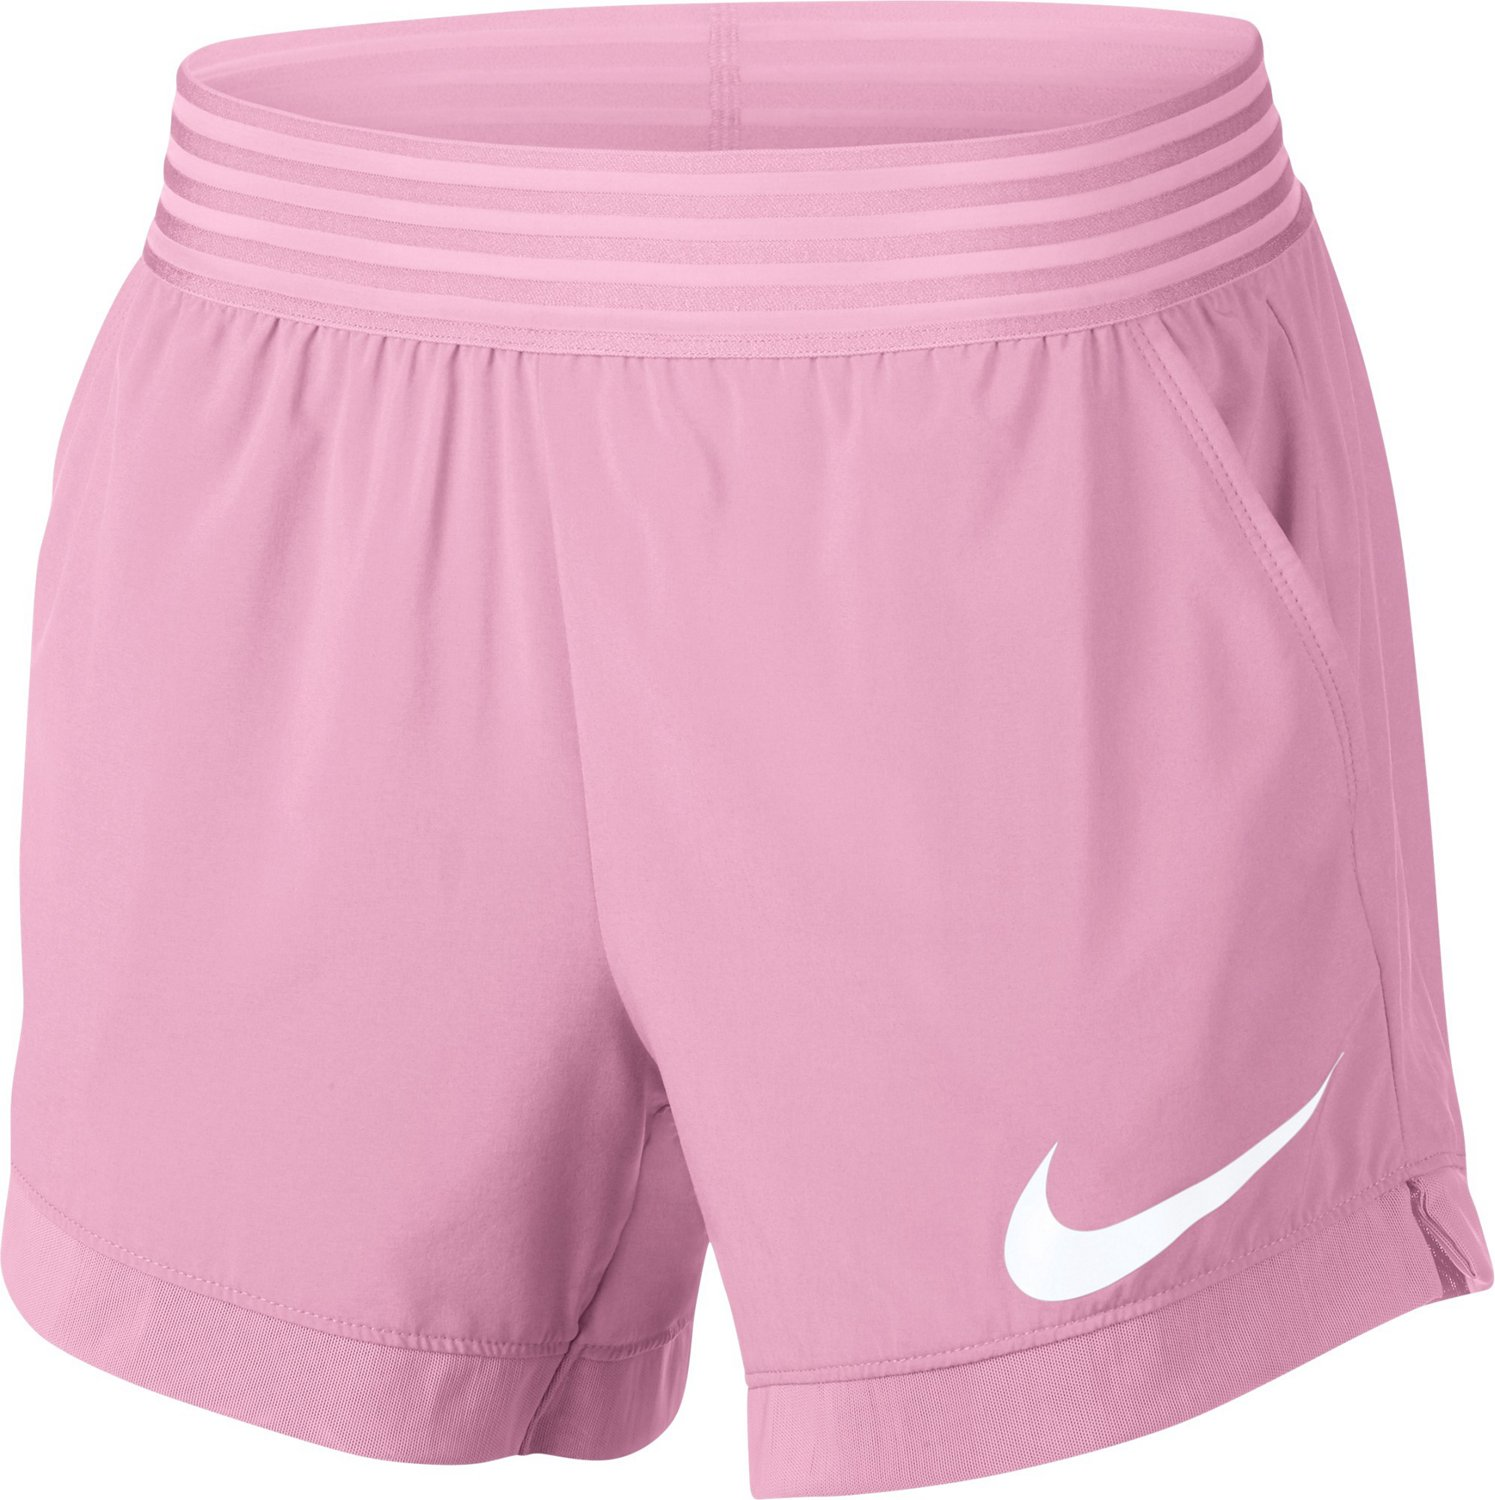 5dcc95536dd1 Display product reviews for Nike Women s Flex Training Short